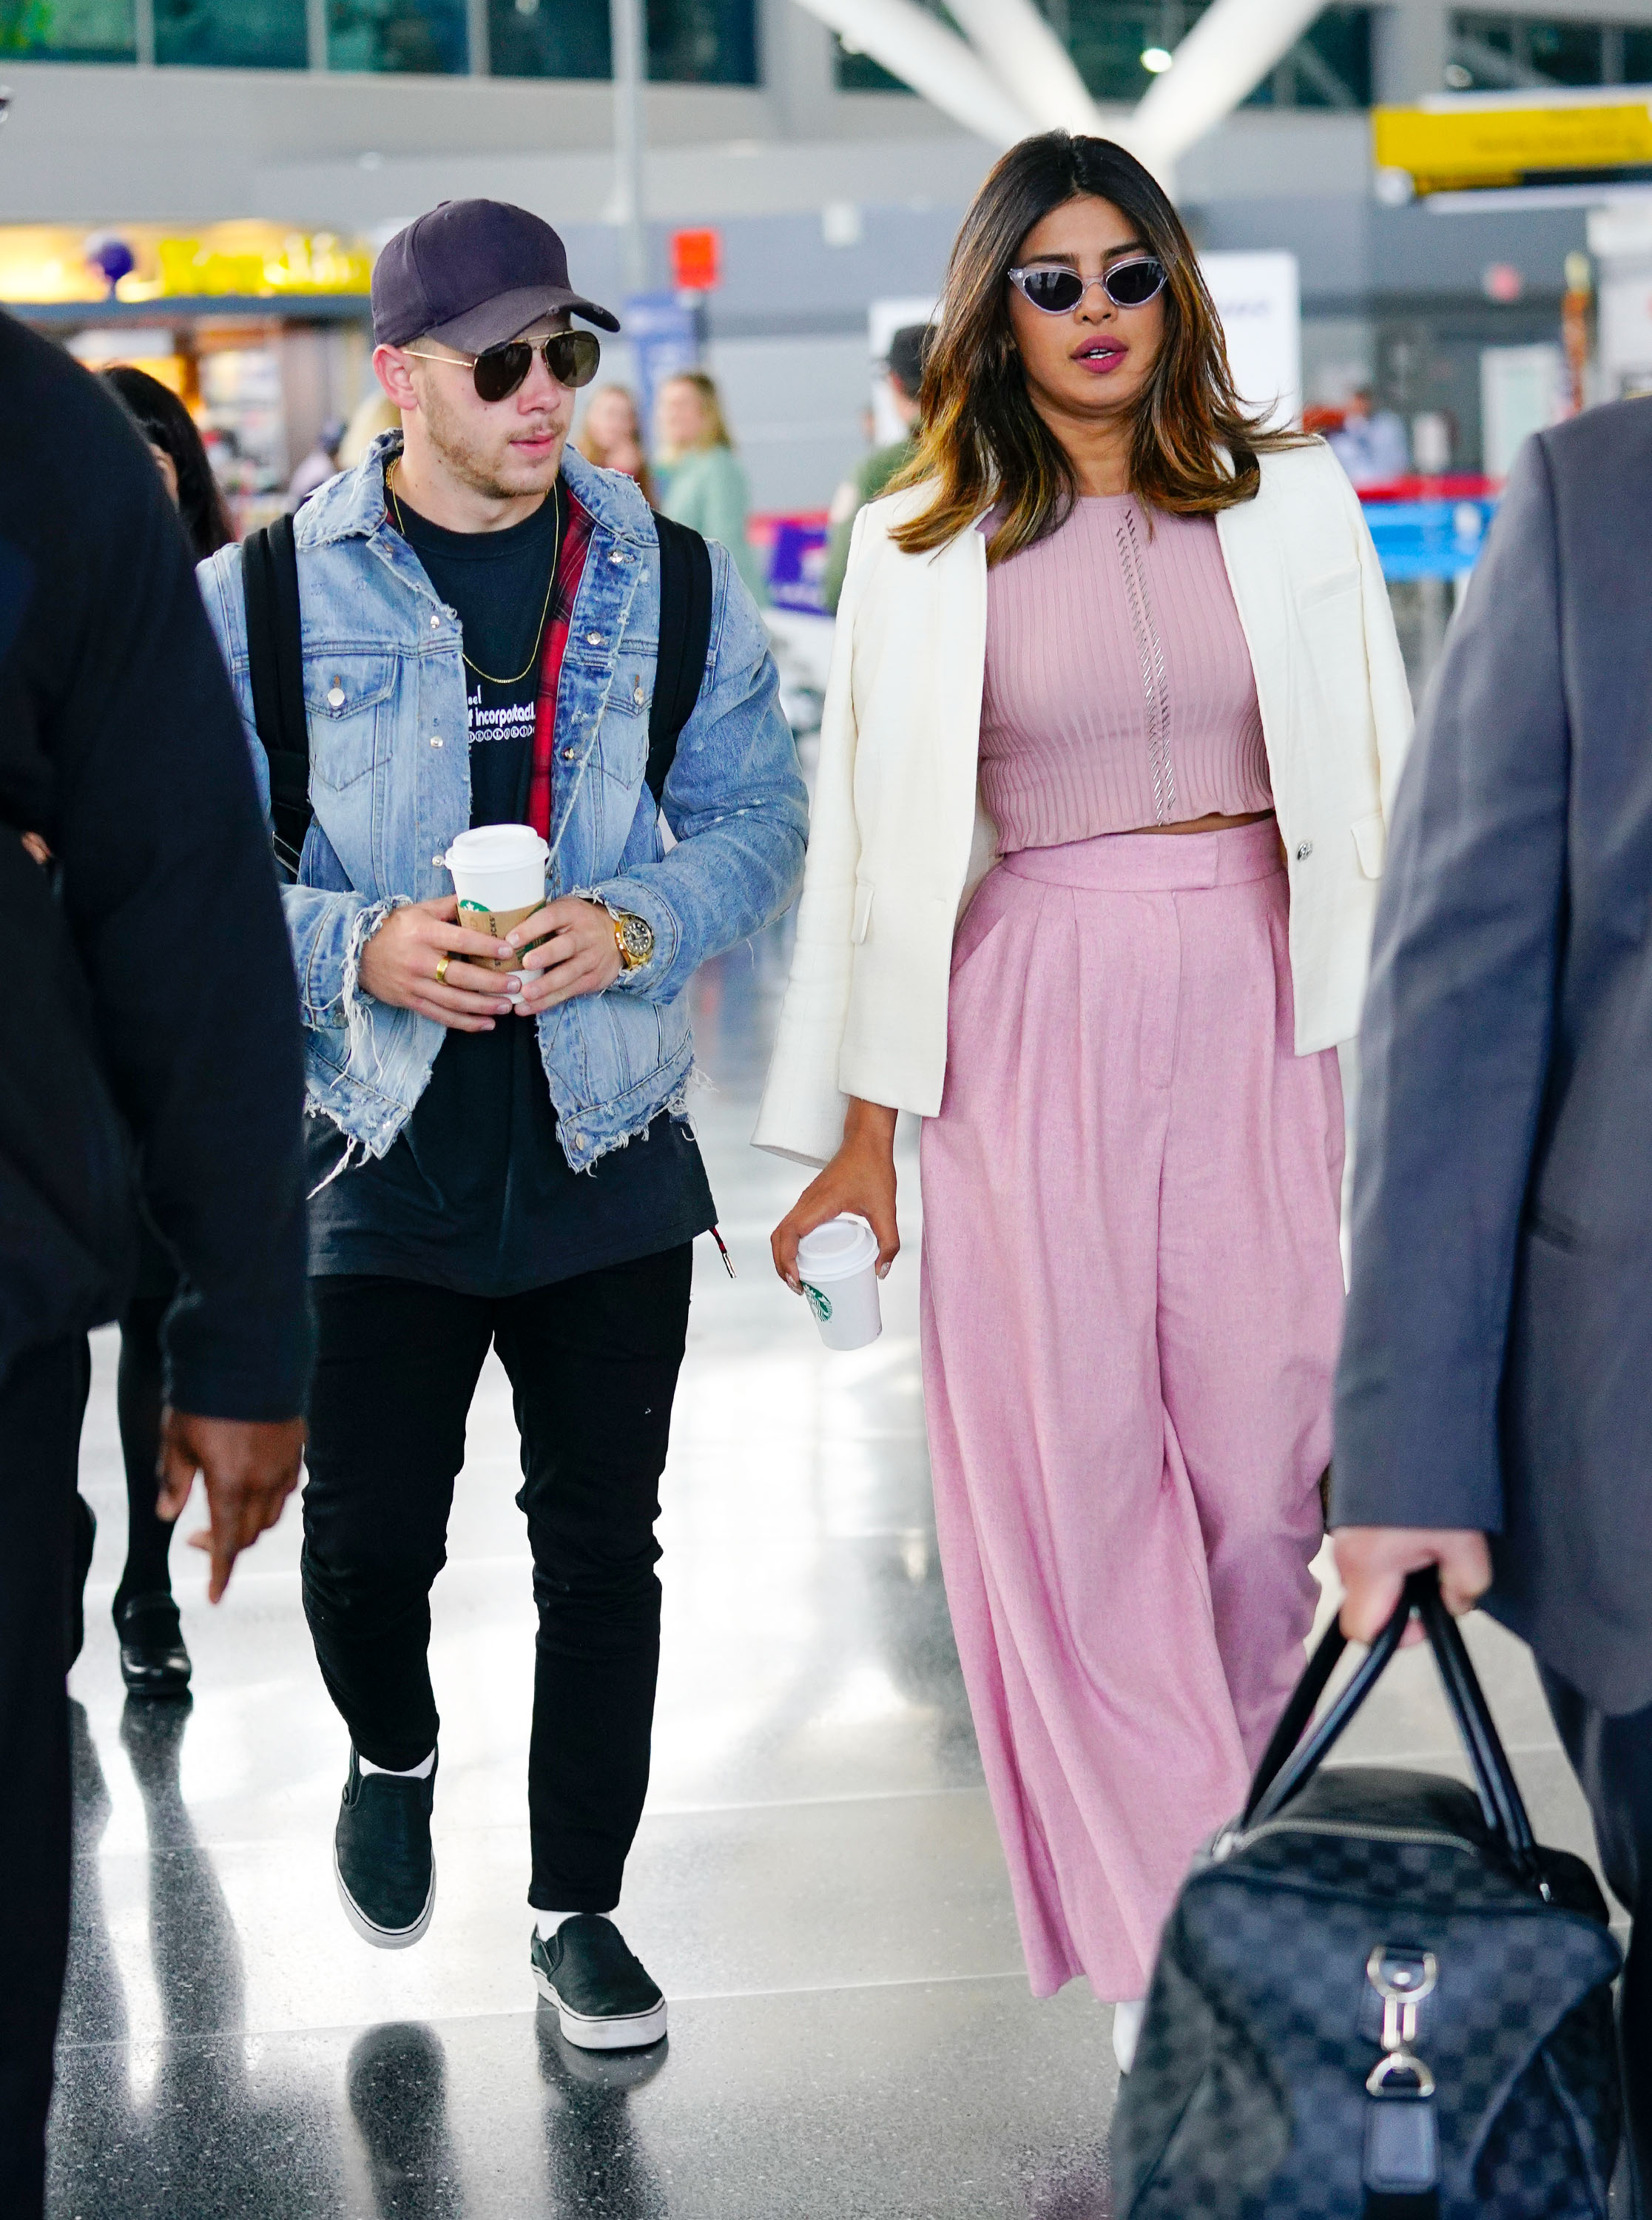 Nick-Jonas-Priyanka-Chopra-Step-Out-In-New-York-City-Together